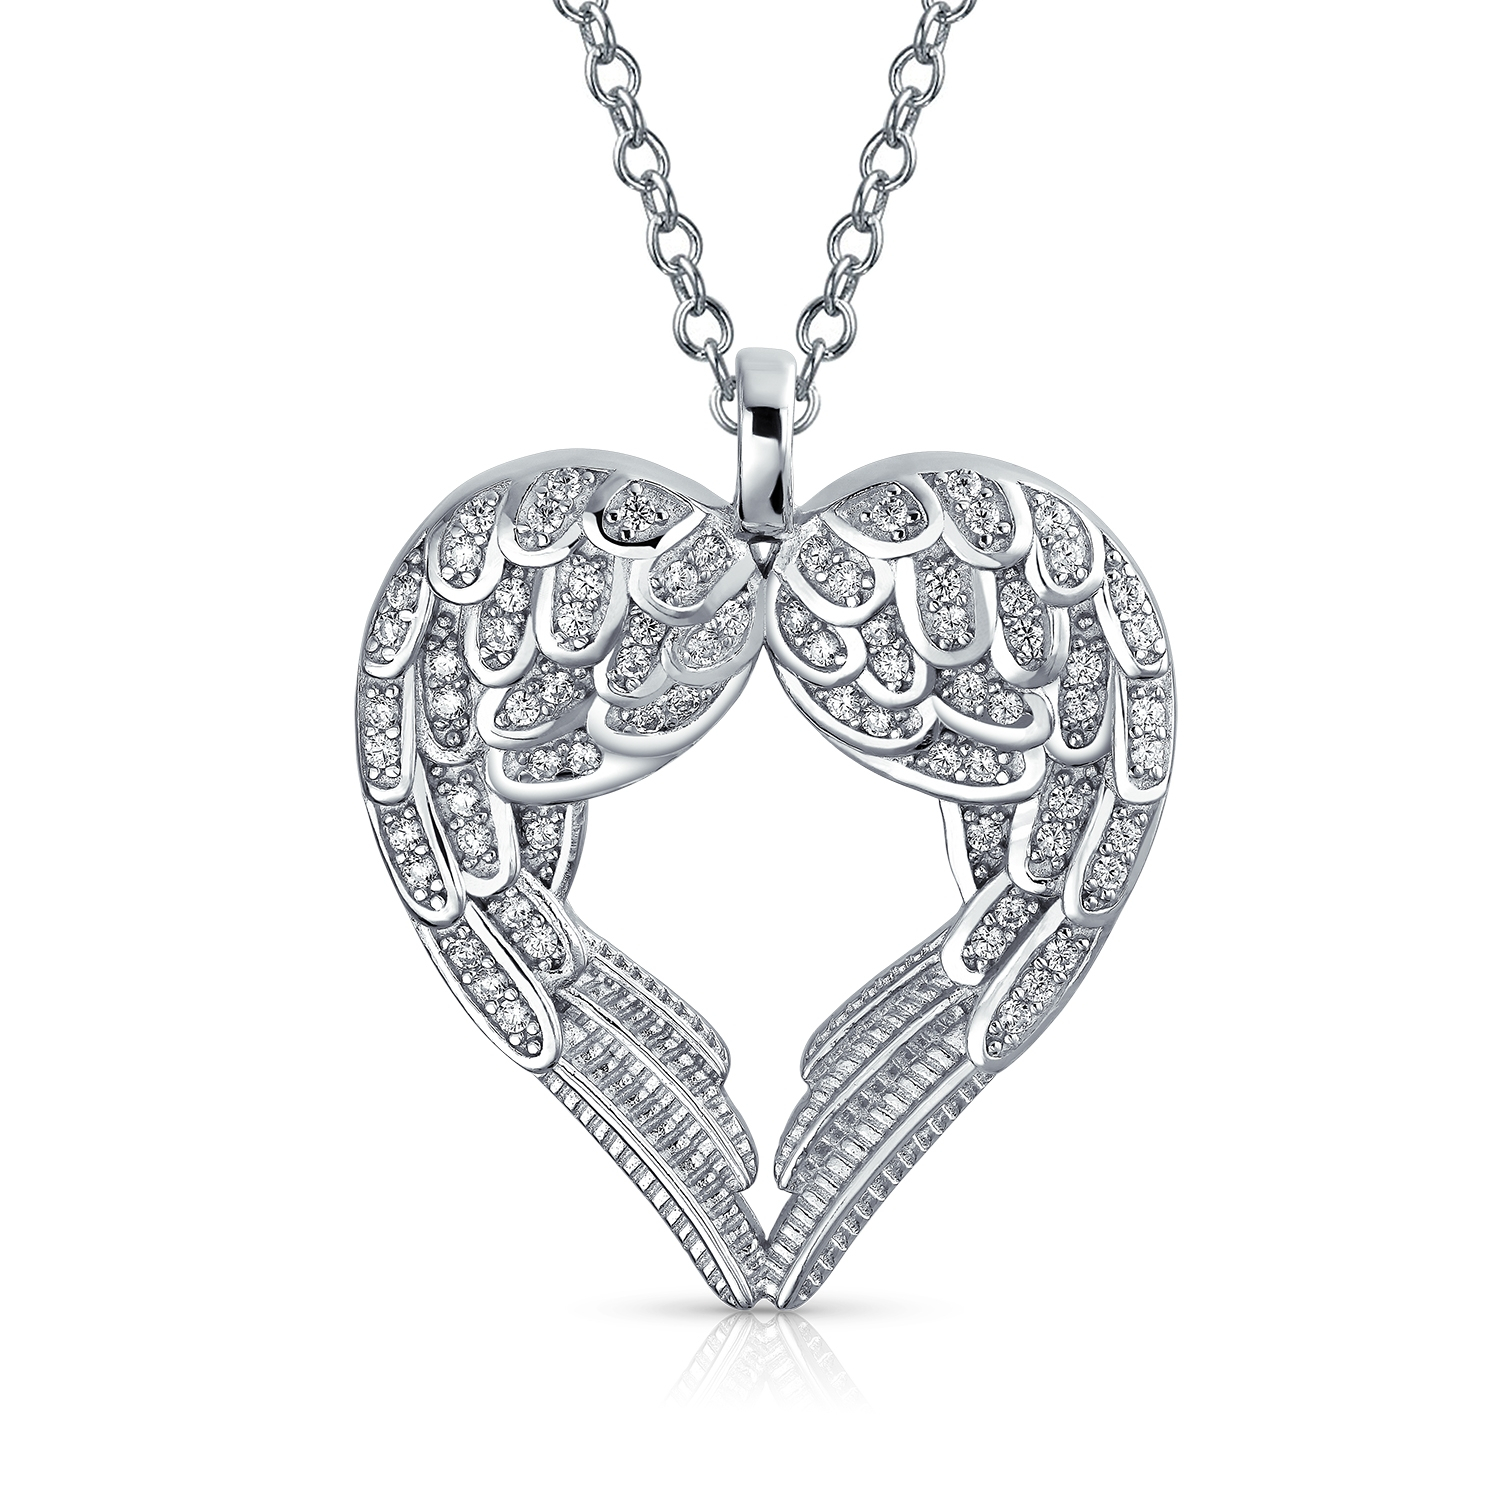 Details About Guardian Angel Wing Heart Pave Cubic Zirconia Sterling Silver  Pendant Necklace Regarding Most Recently Released Angel Wing Pendant Necklaces (View 11 of 25)